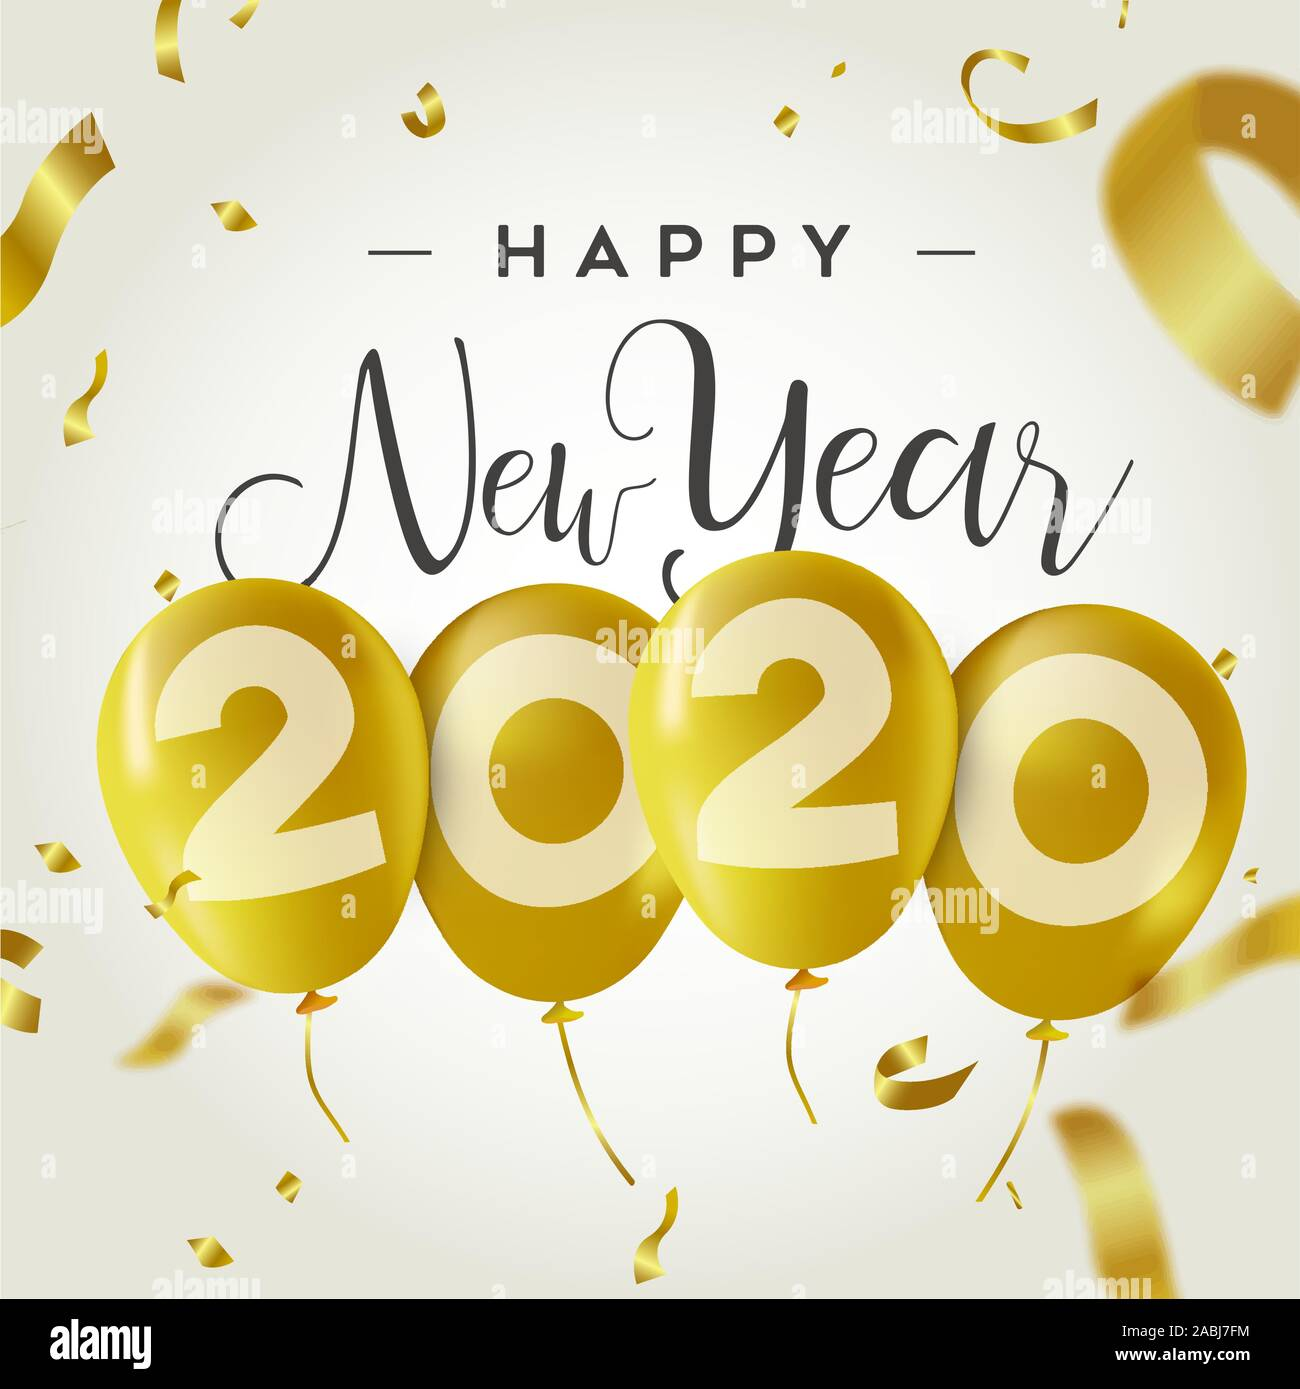 Happy New Year 2020 Greeting Card Illustration Of Dynamic